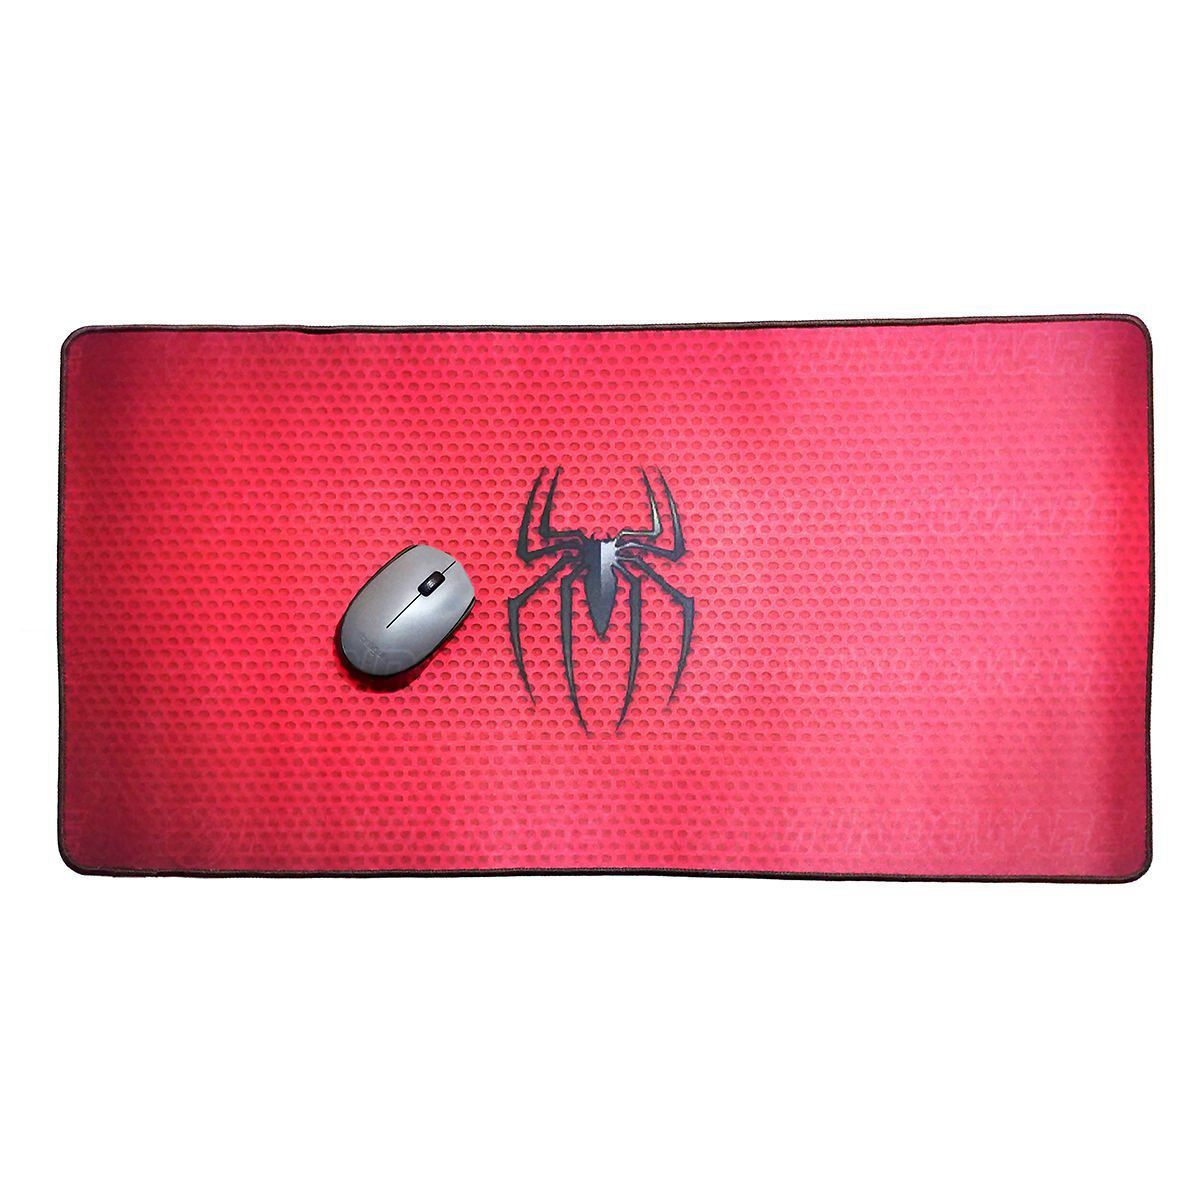 Mouse Pad Gamer Extra Grande 700x350x3mm Bordas Costuradas Base Antiderrapante Spider Exbom MP-7035C